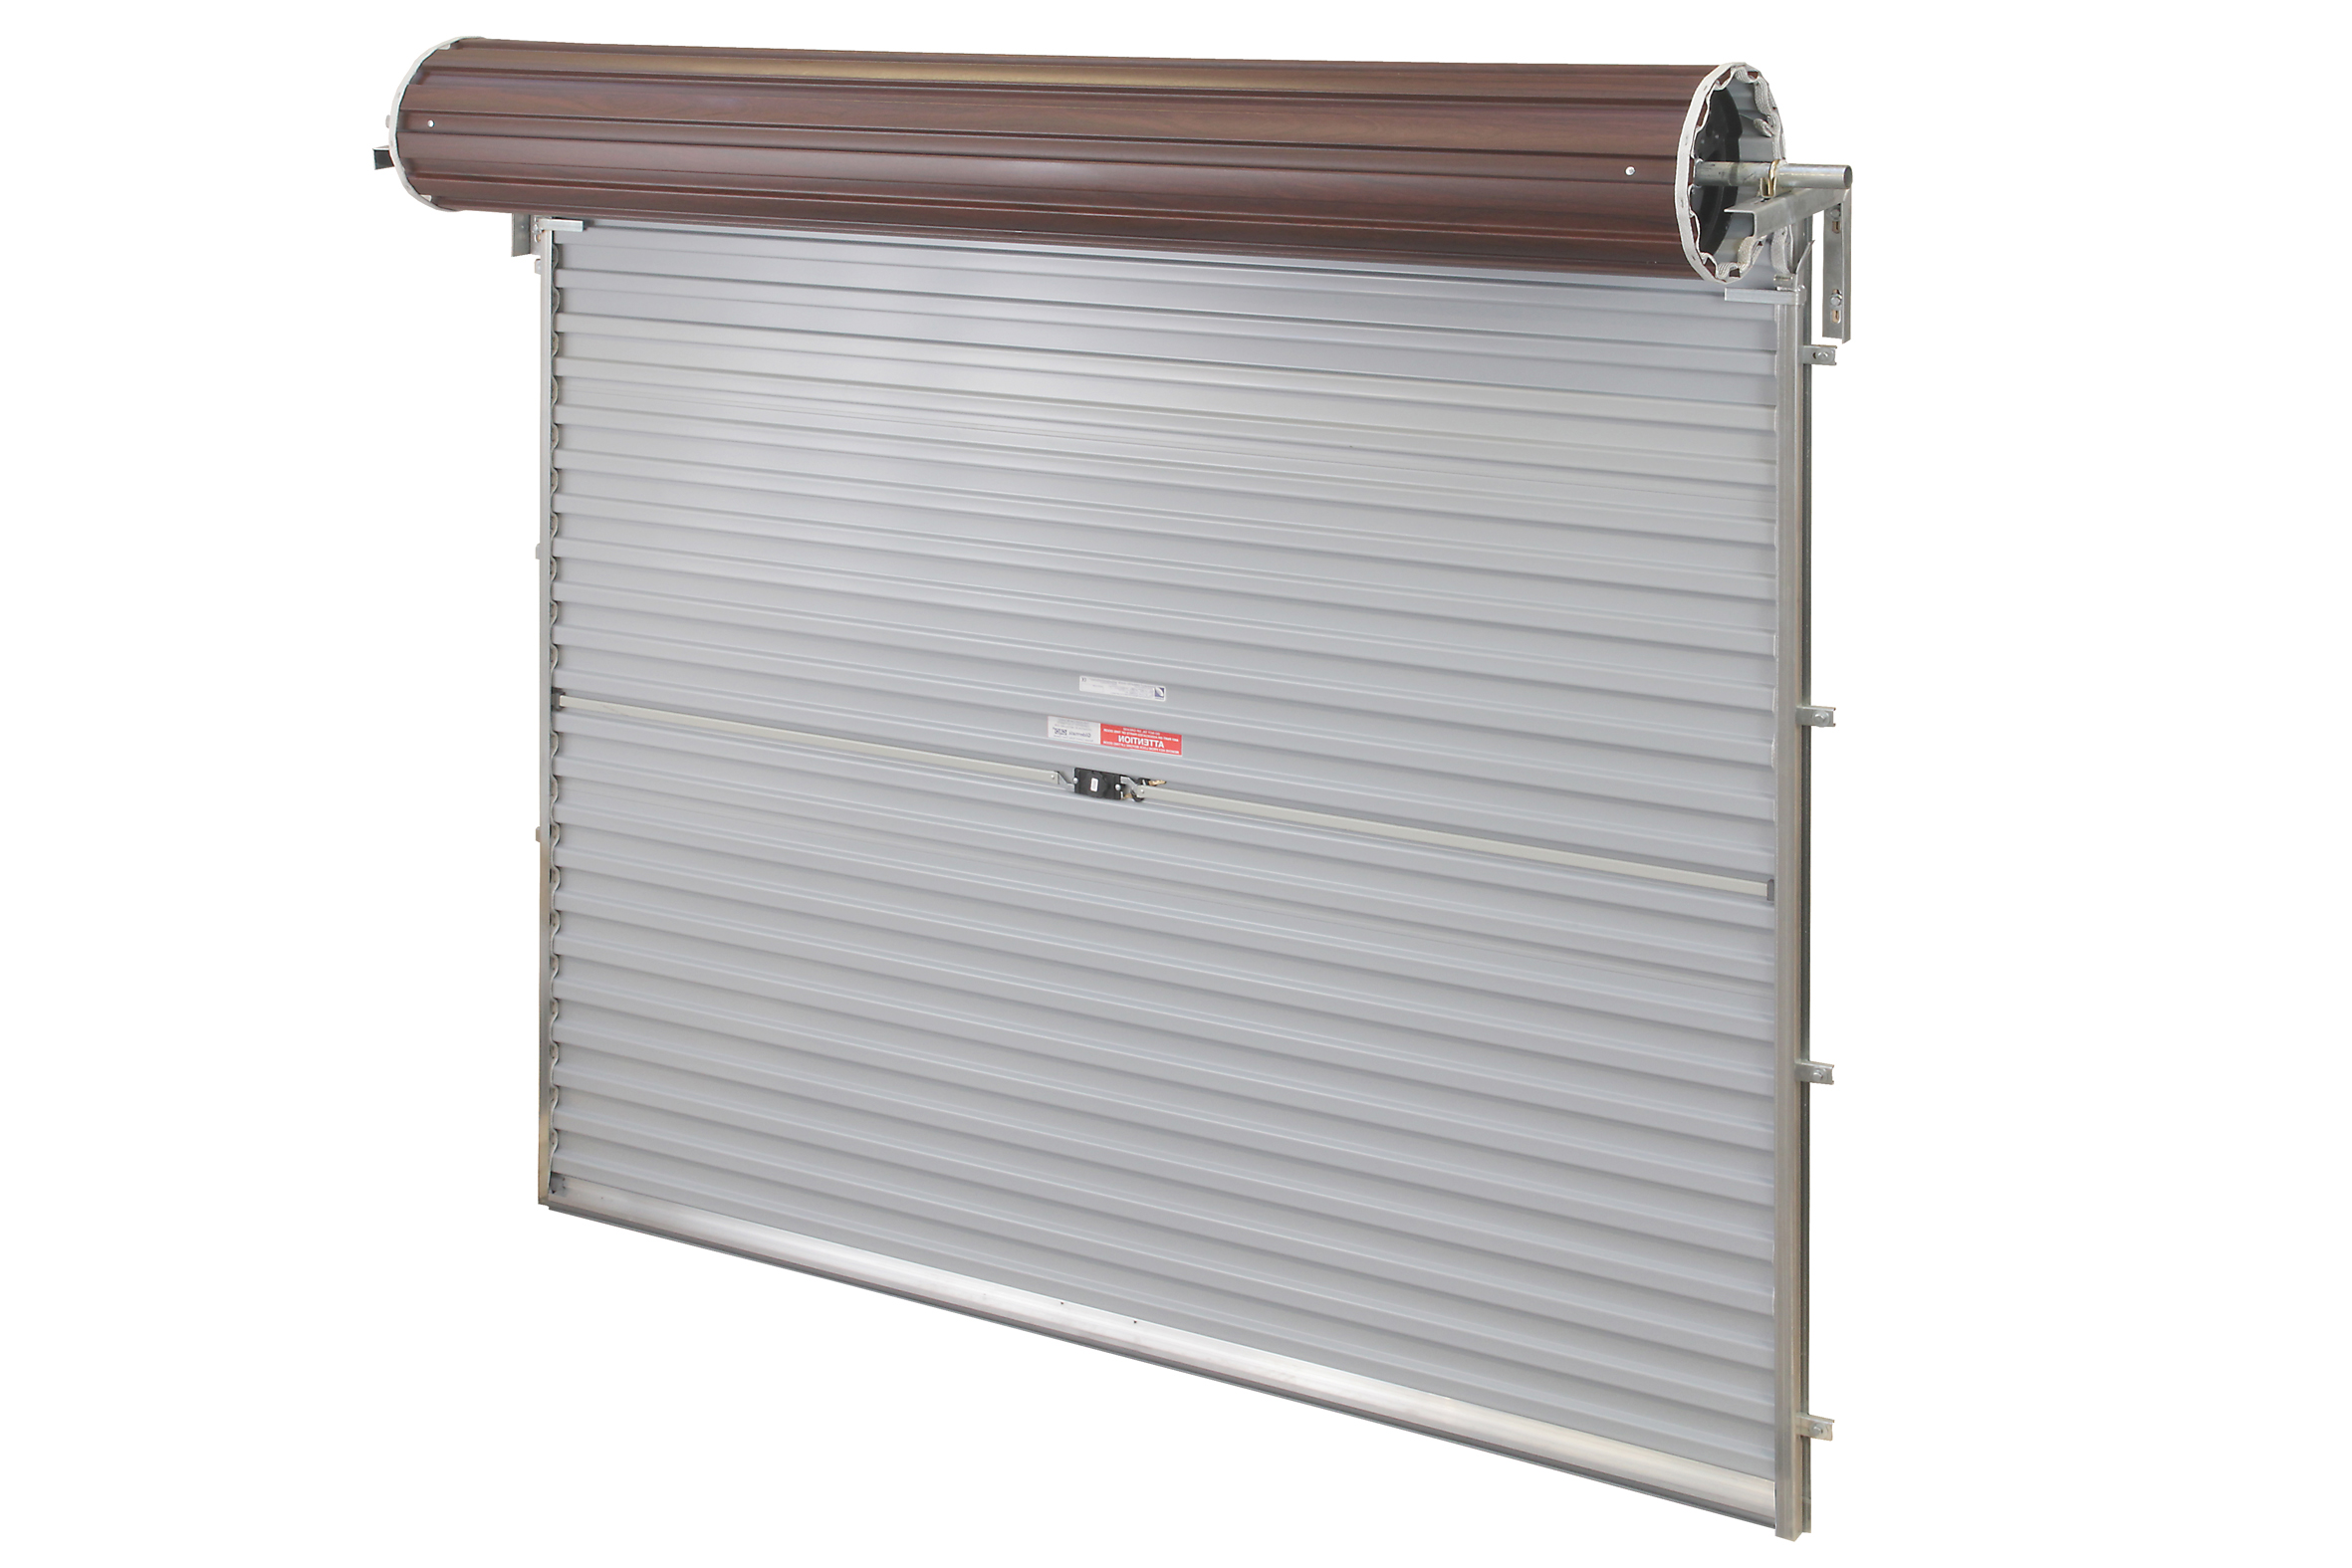 1575 #7A5A51 Tel: 031 764 3132 / Cell: 082 327 1022 image Garage Doors Company 35832362